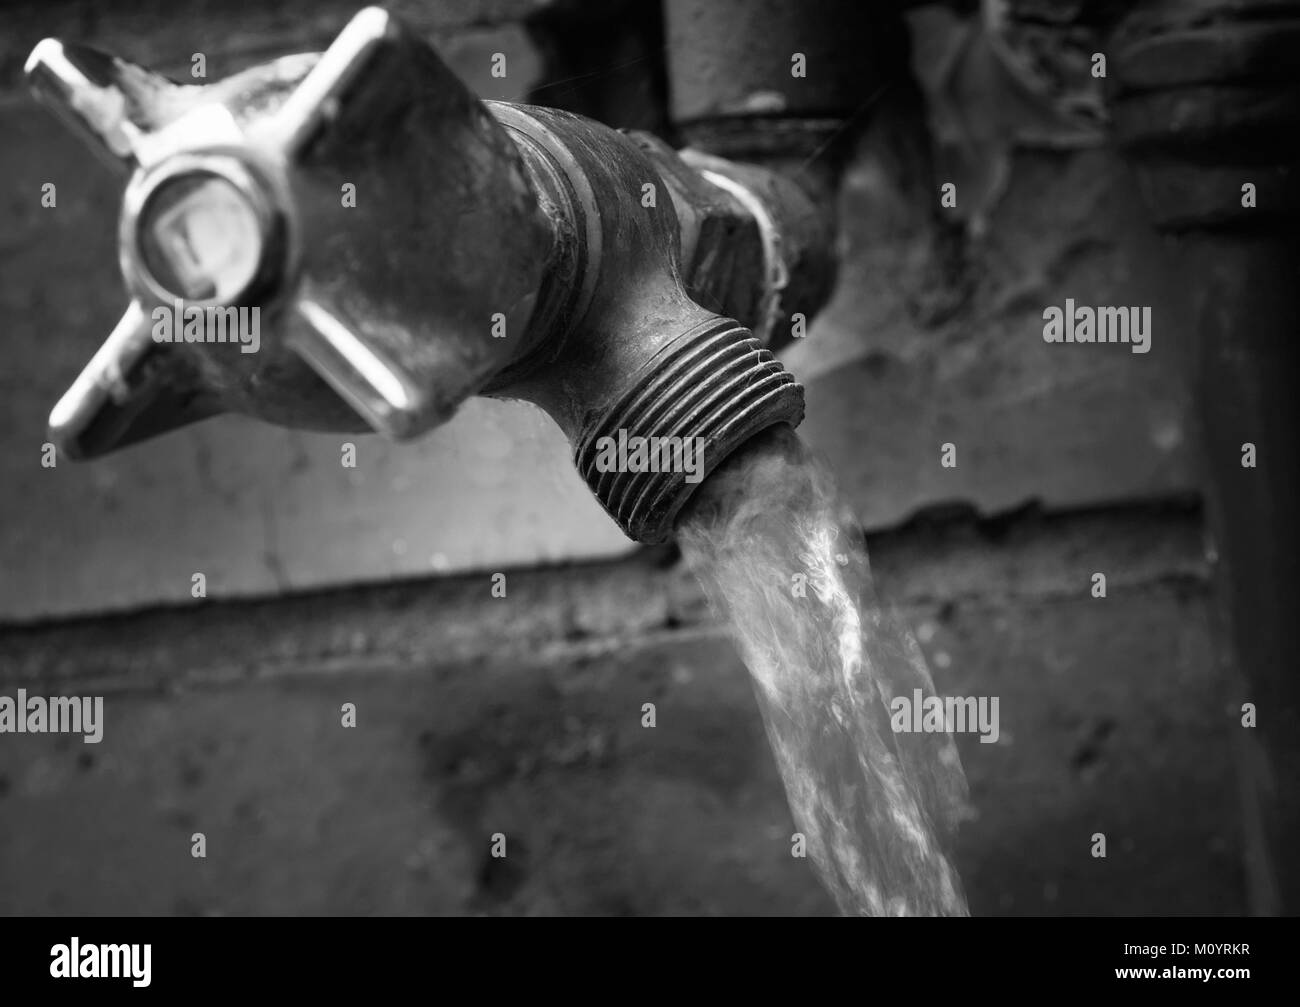 Faucet Garden Black and White Stock Photos & Images - Alamy